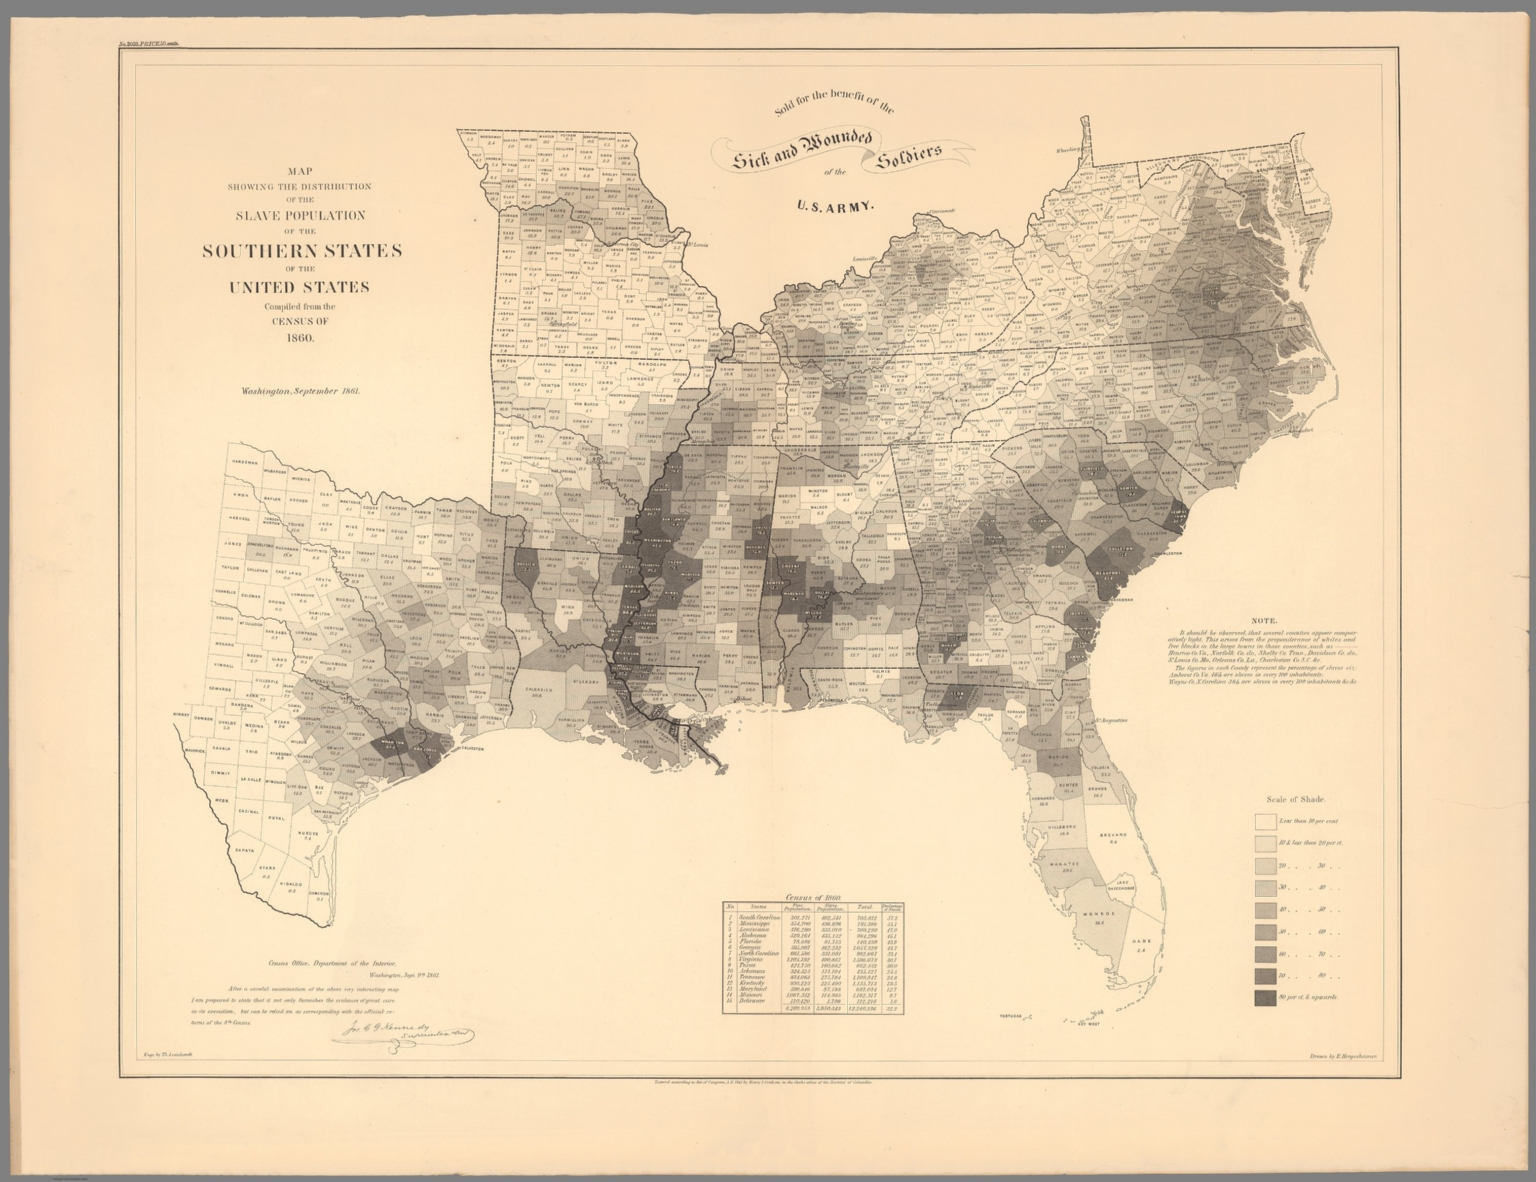 Map Showing The Distribution Of The Slave Population Of The Southern States David Rumsey Historical Map Collection